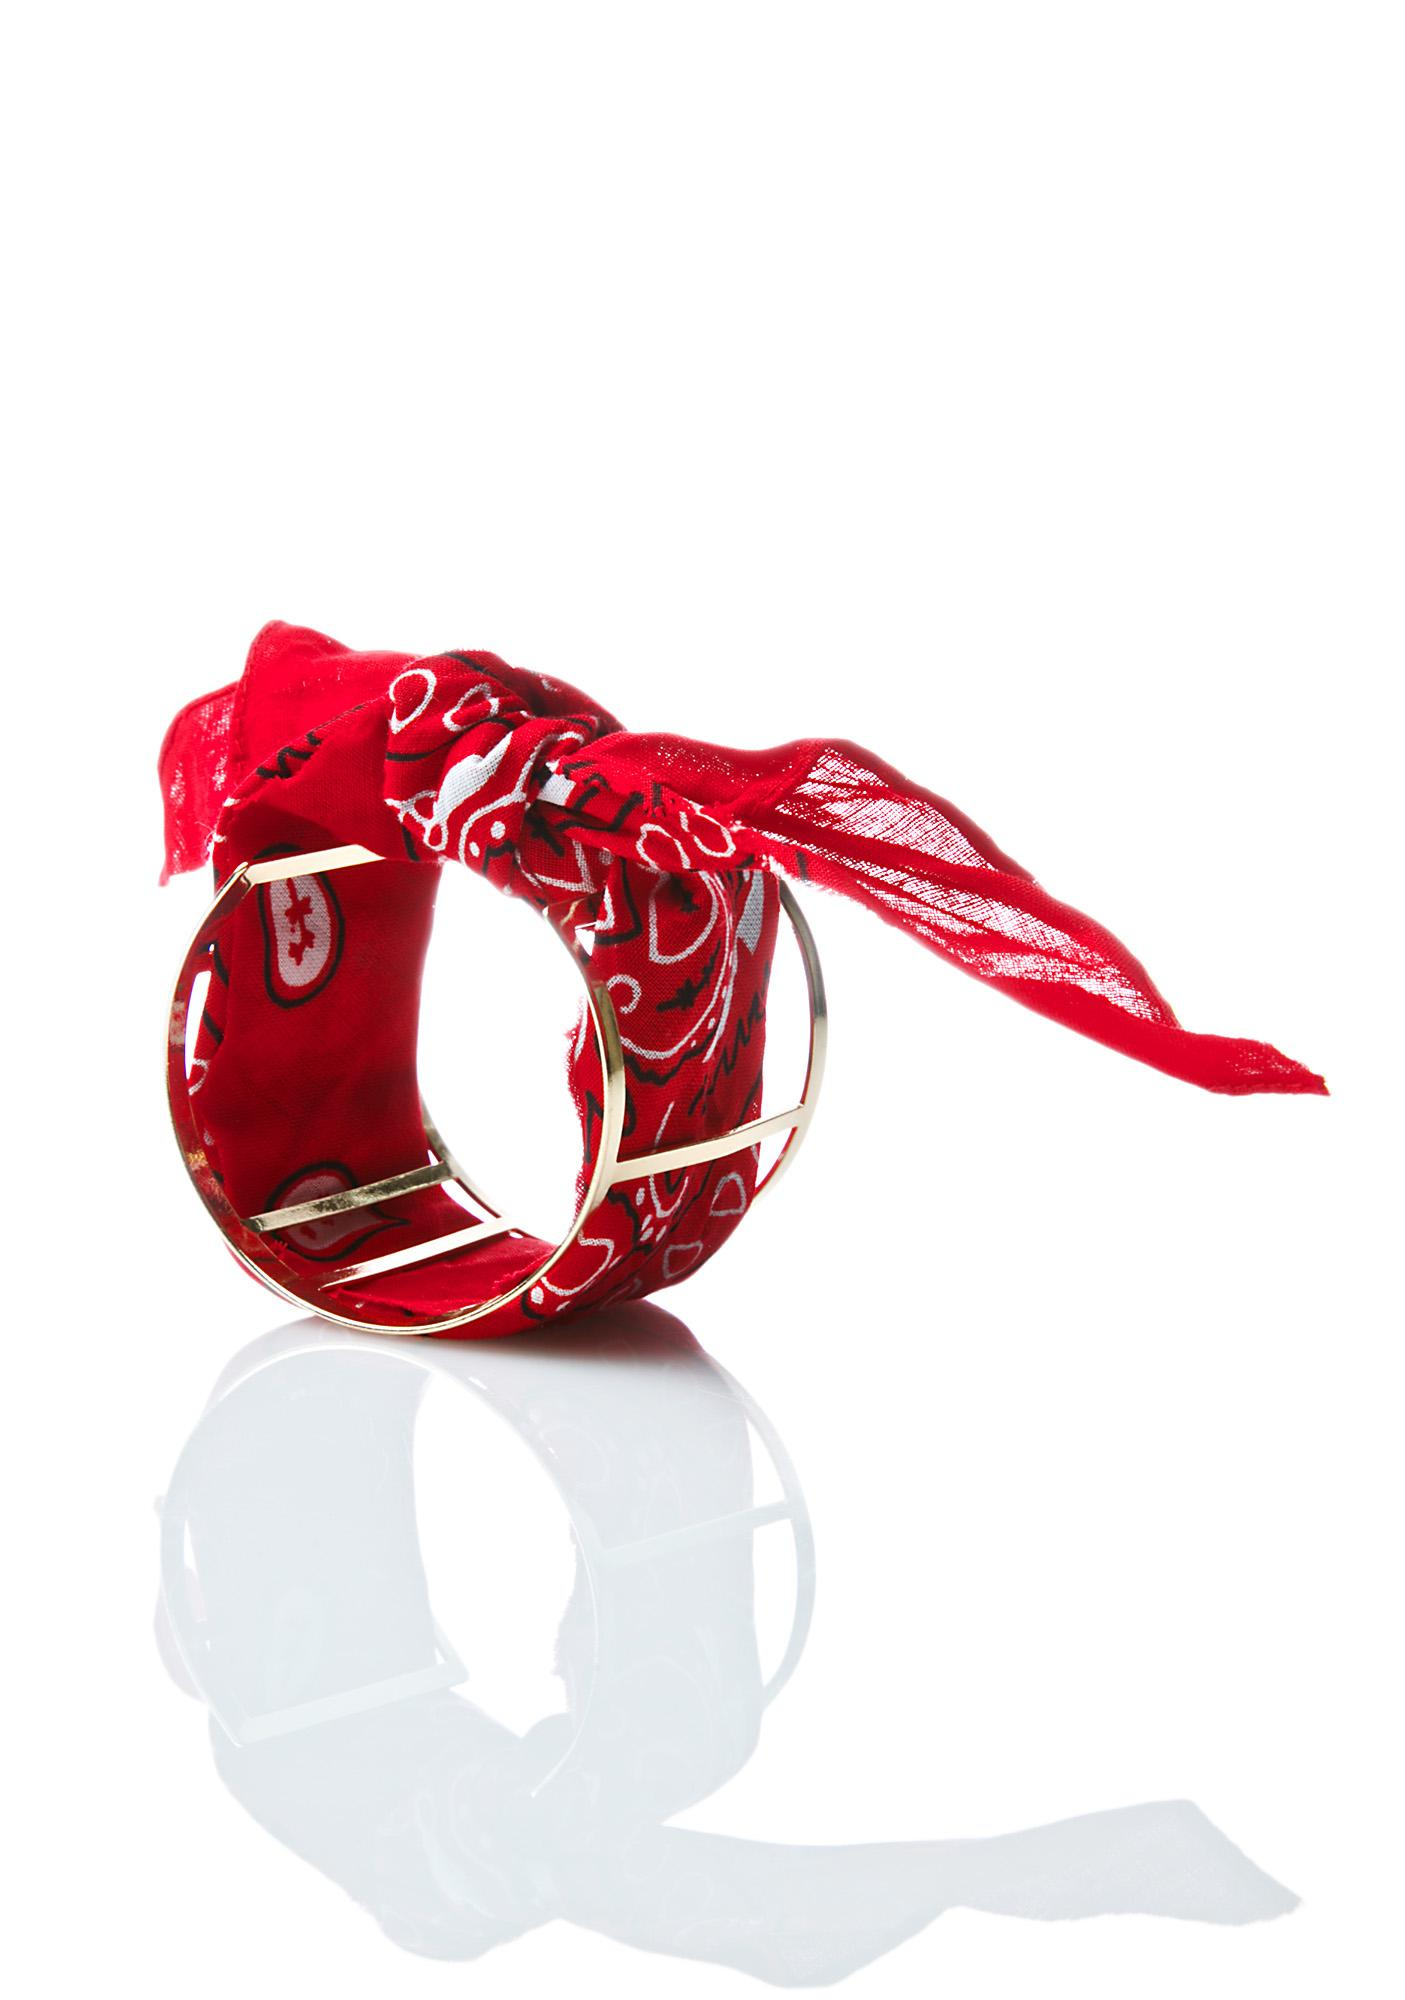 Fiery Throwdown Bandana Cuff